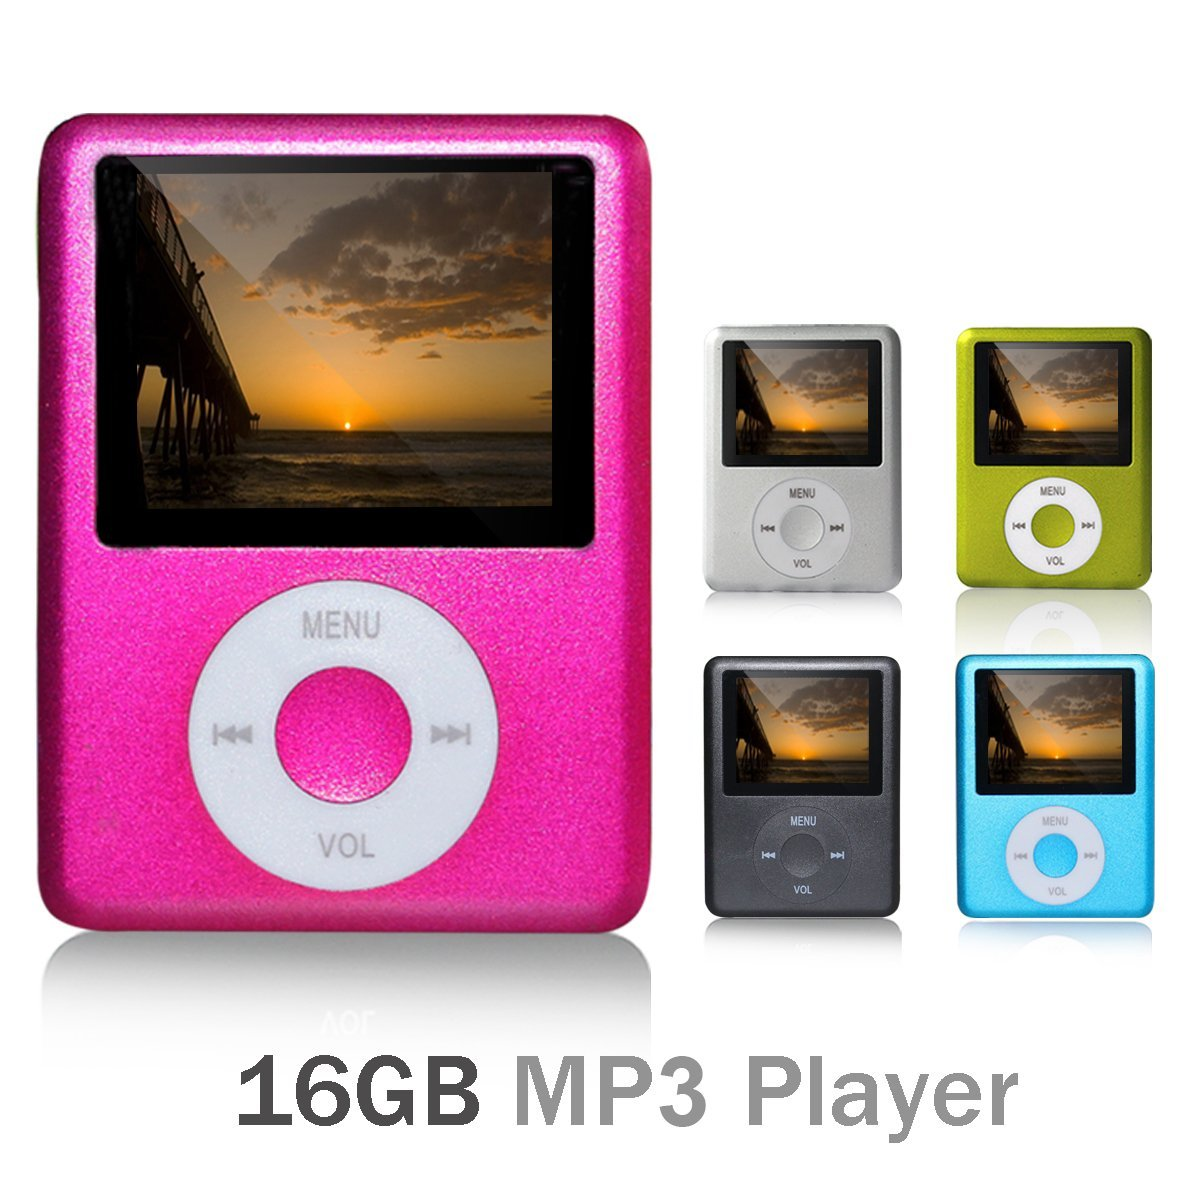 Cheap Firmware Mp4 Mp3 Player Vl 547 Download, find Firmware